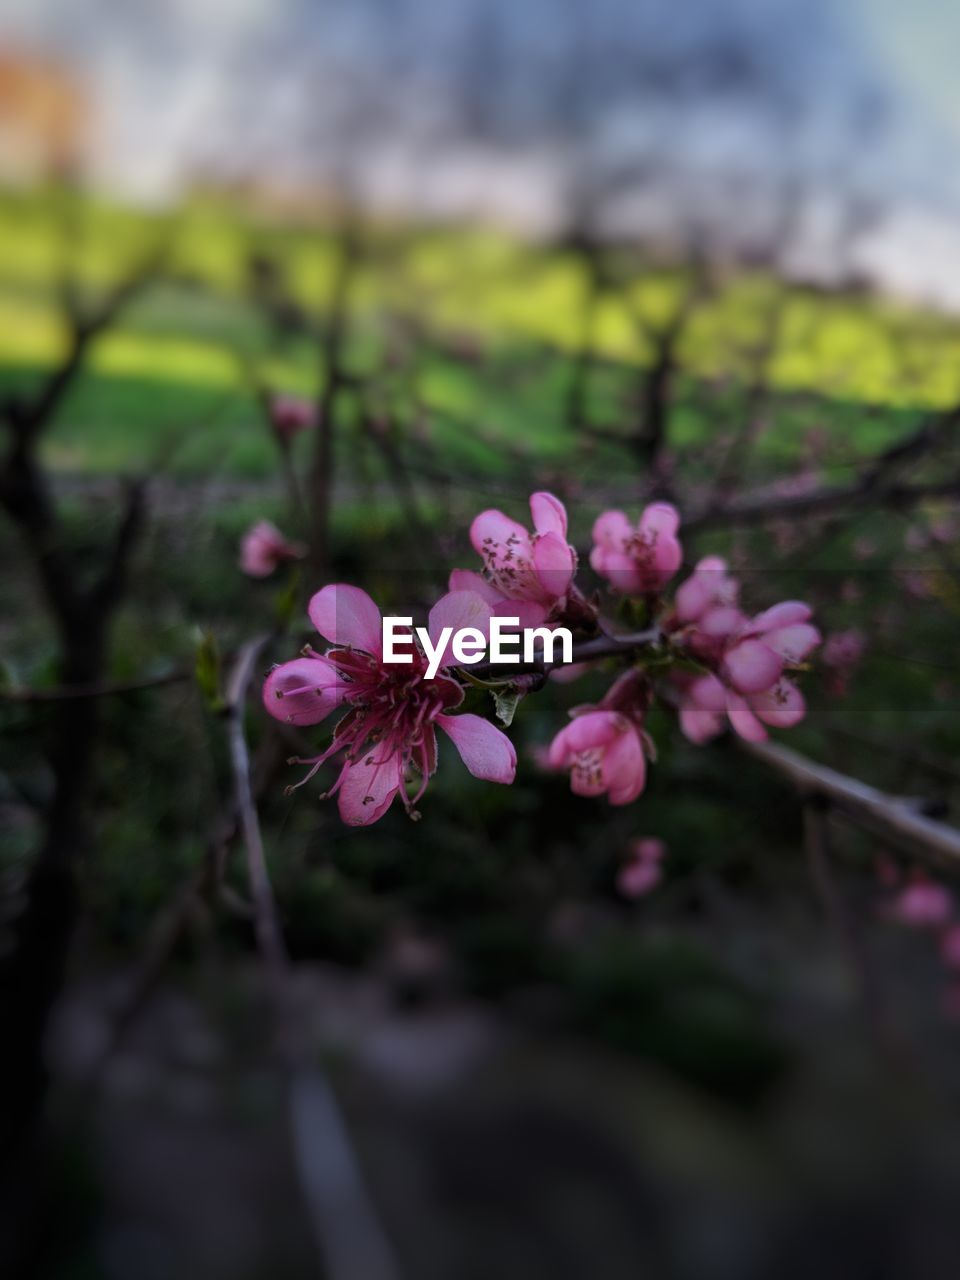 flower, flowering plant, beauty in nature, plant, freshness, vulnerability, fragility, growth, petal, pink color, close-up, nature, inflorescence, day, selective focus, flower head, no people, outdoors, blossom, focus on foreground, springtime, pollen, purple, cherry tree, cherry blossom